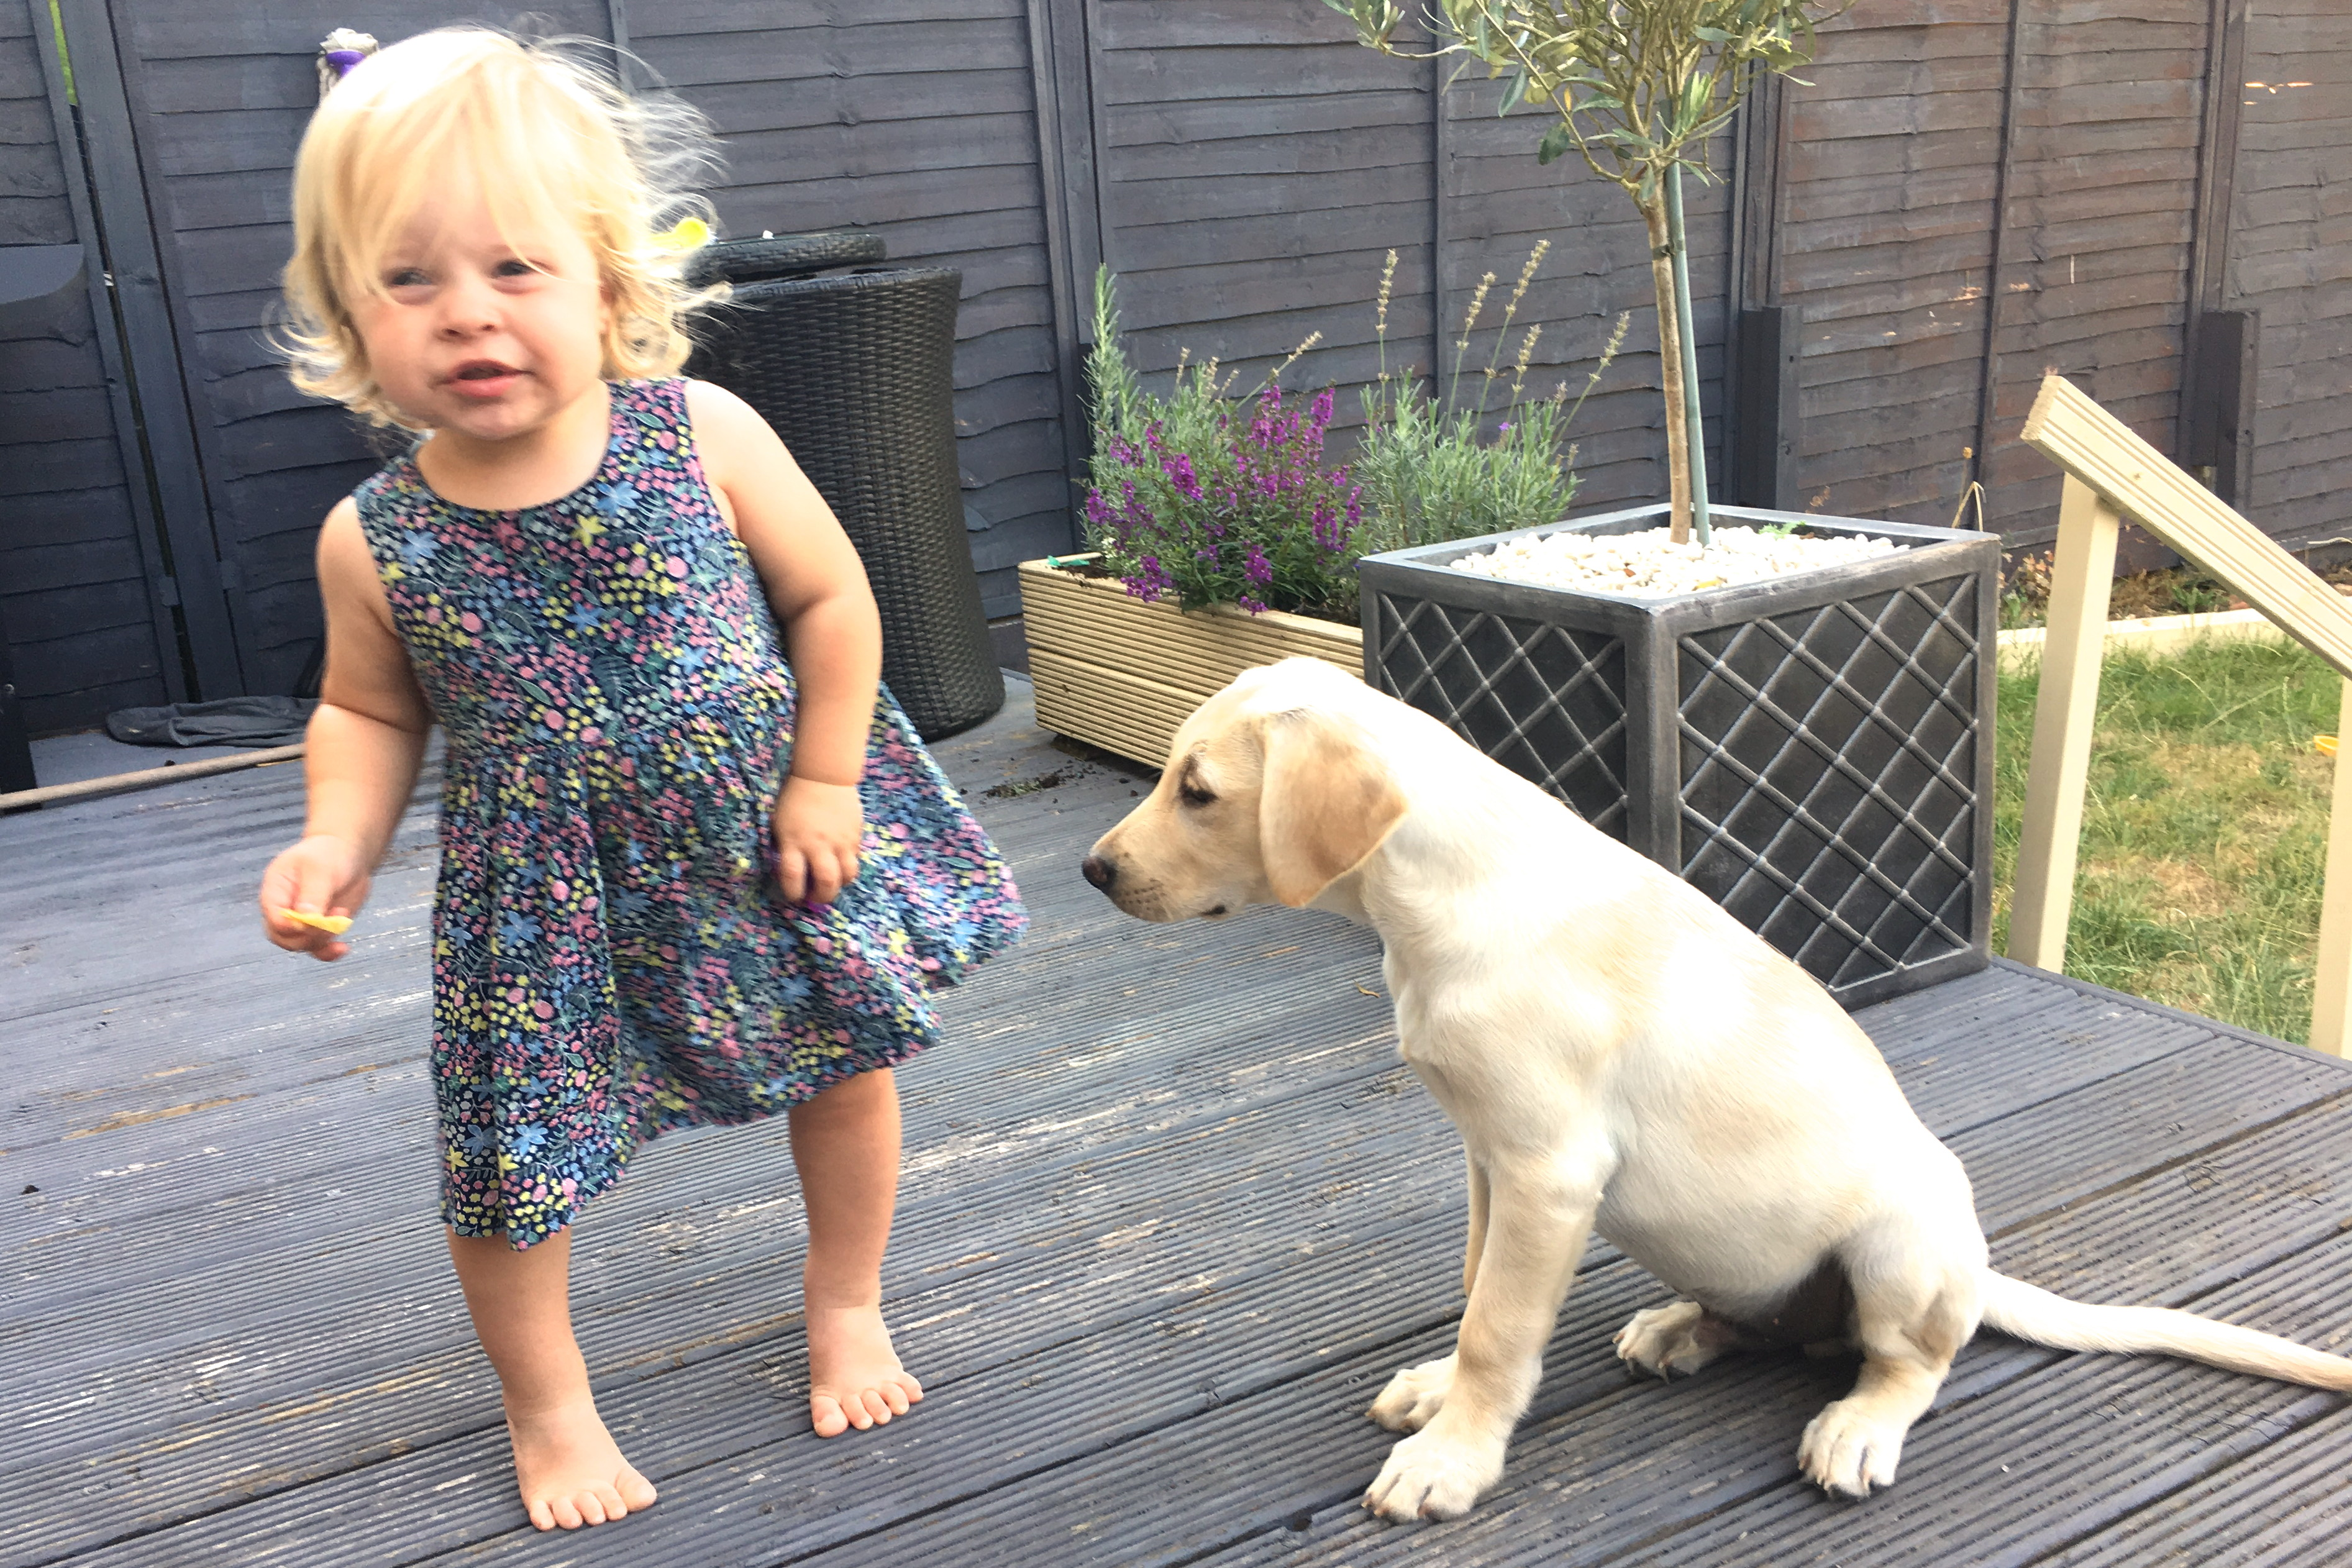 18 month old girl dancing with yellow labrador puppy